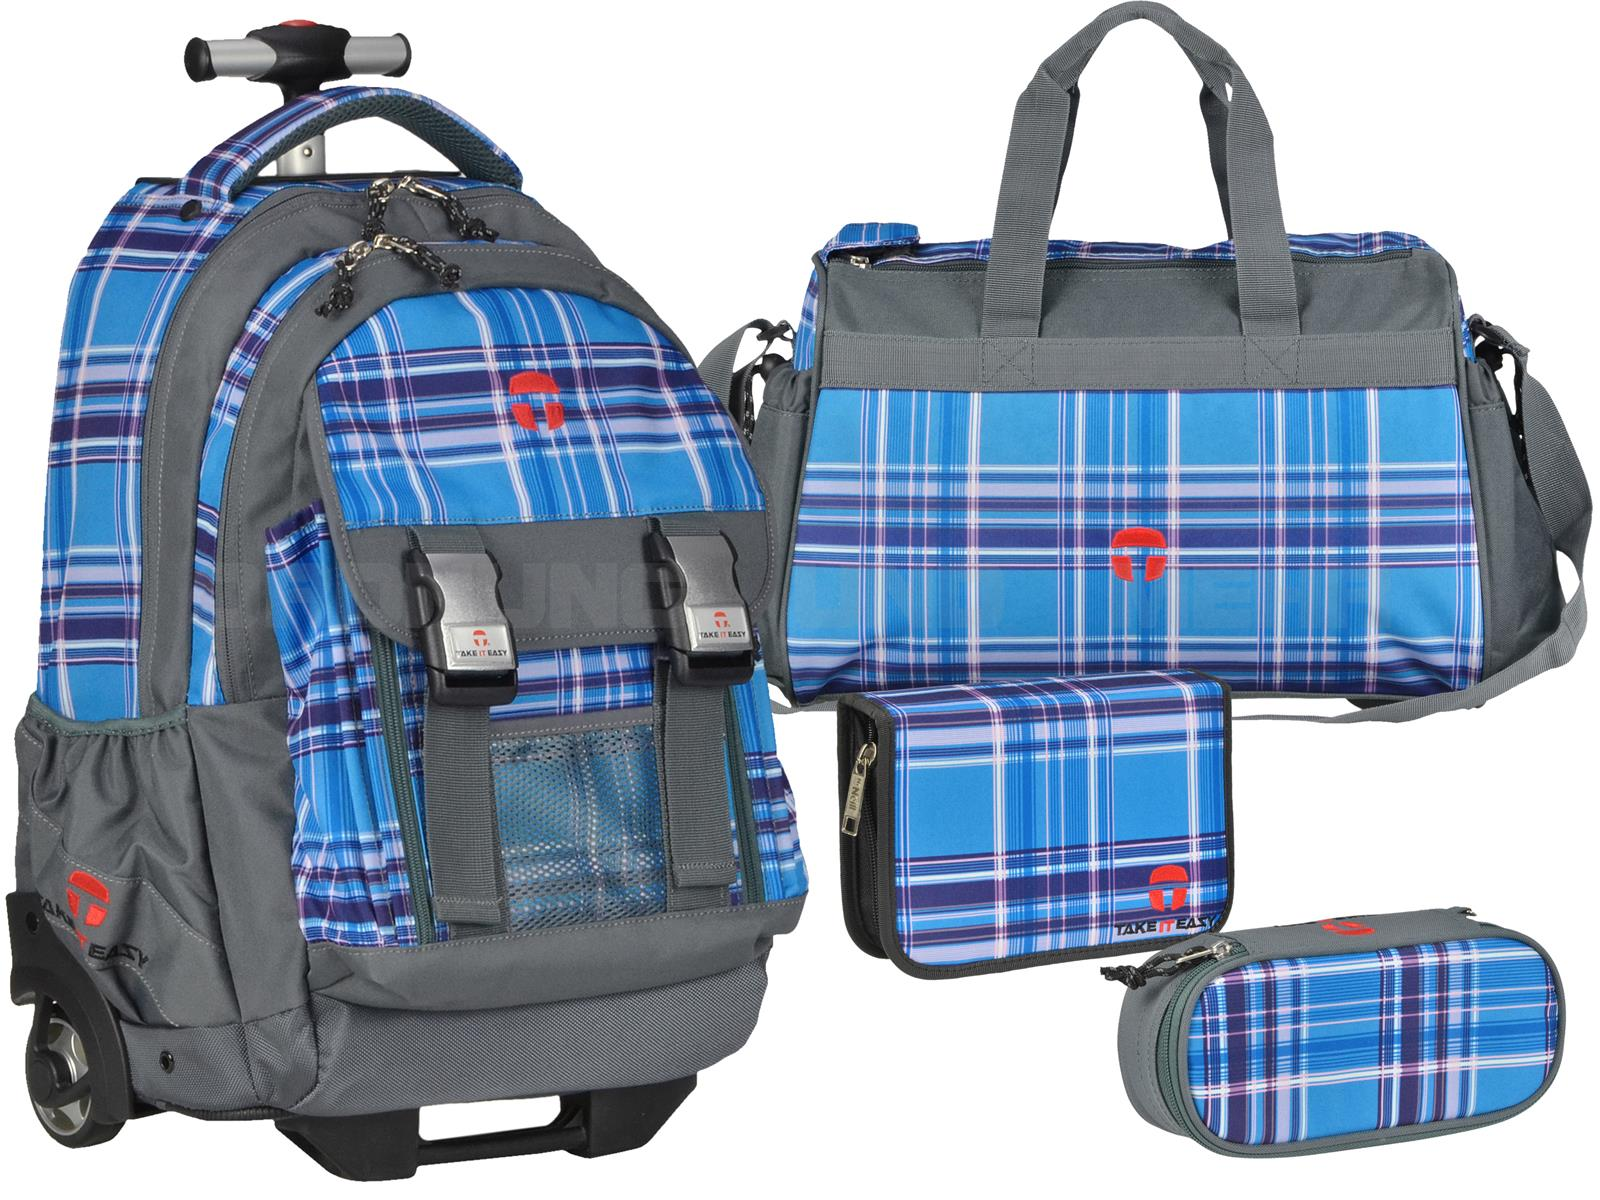 Take it Easy Schultrolley Set VIOLA BLUE 4-teilig grau blau schwarz kariert